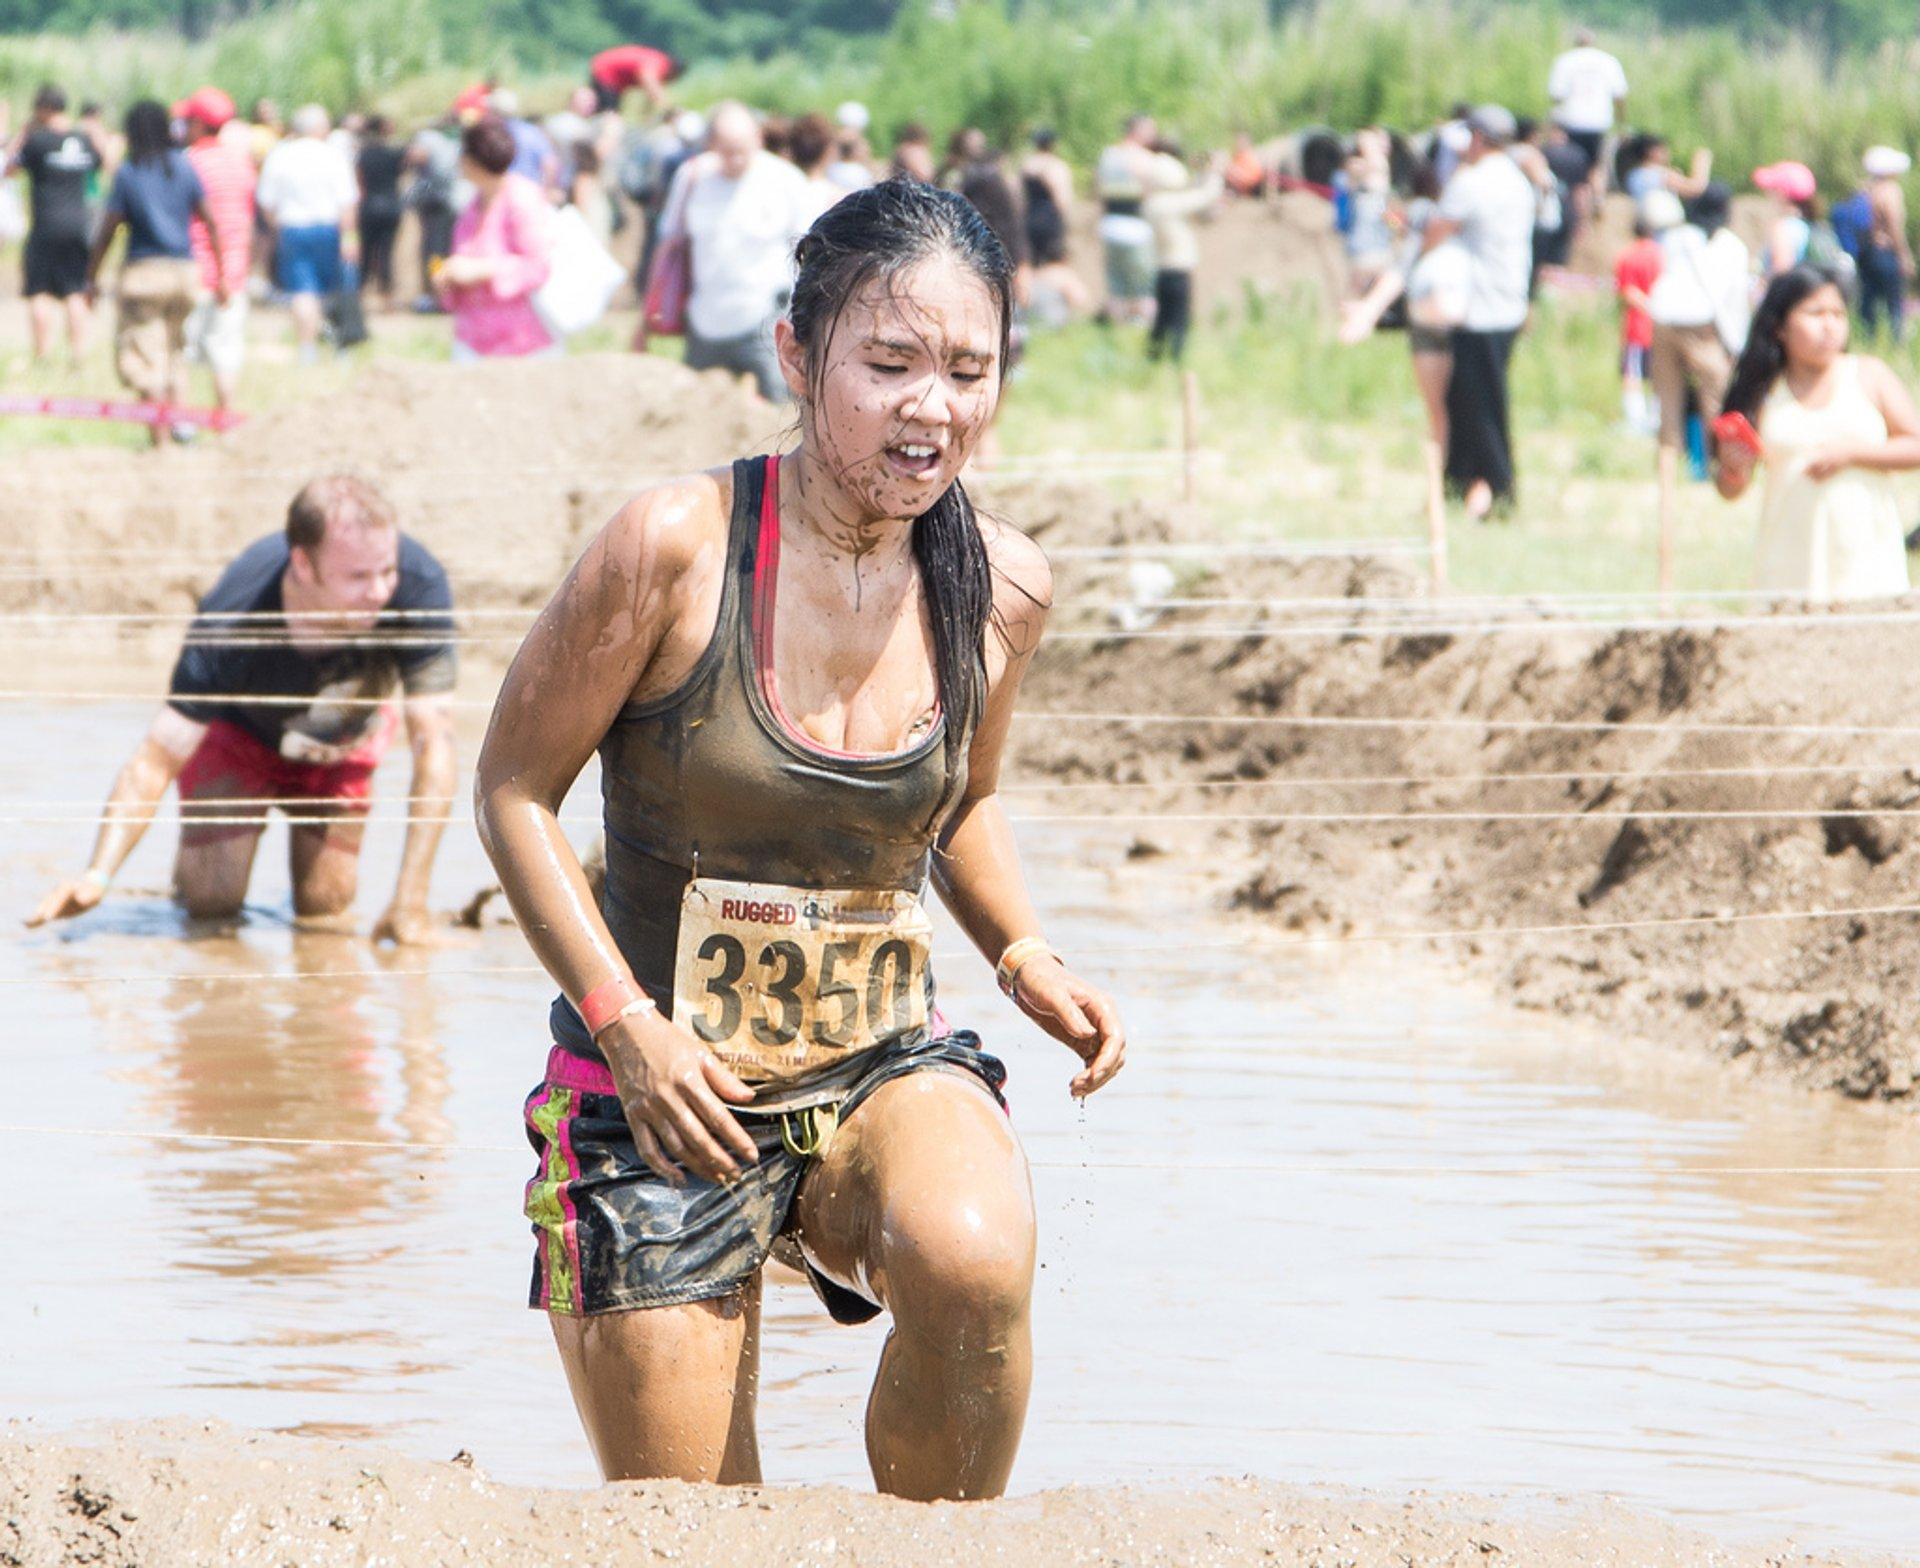 Rugged Maniac New York City in New York - Best Season 2020